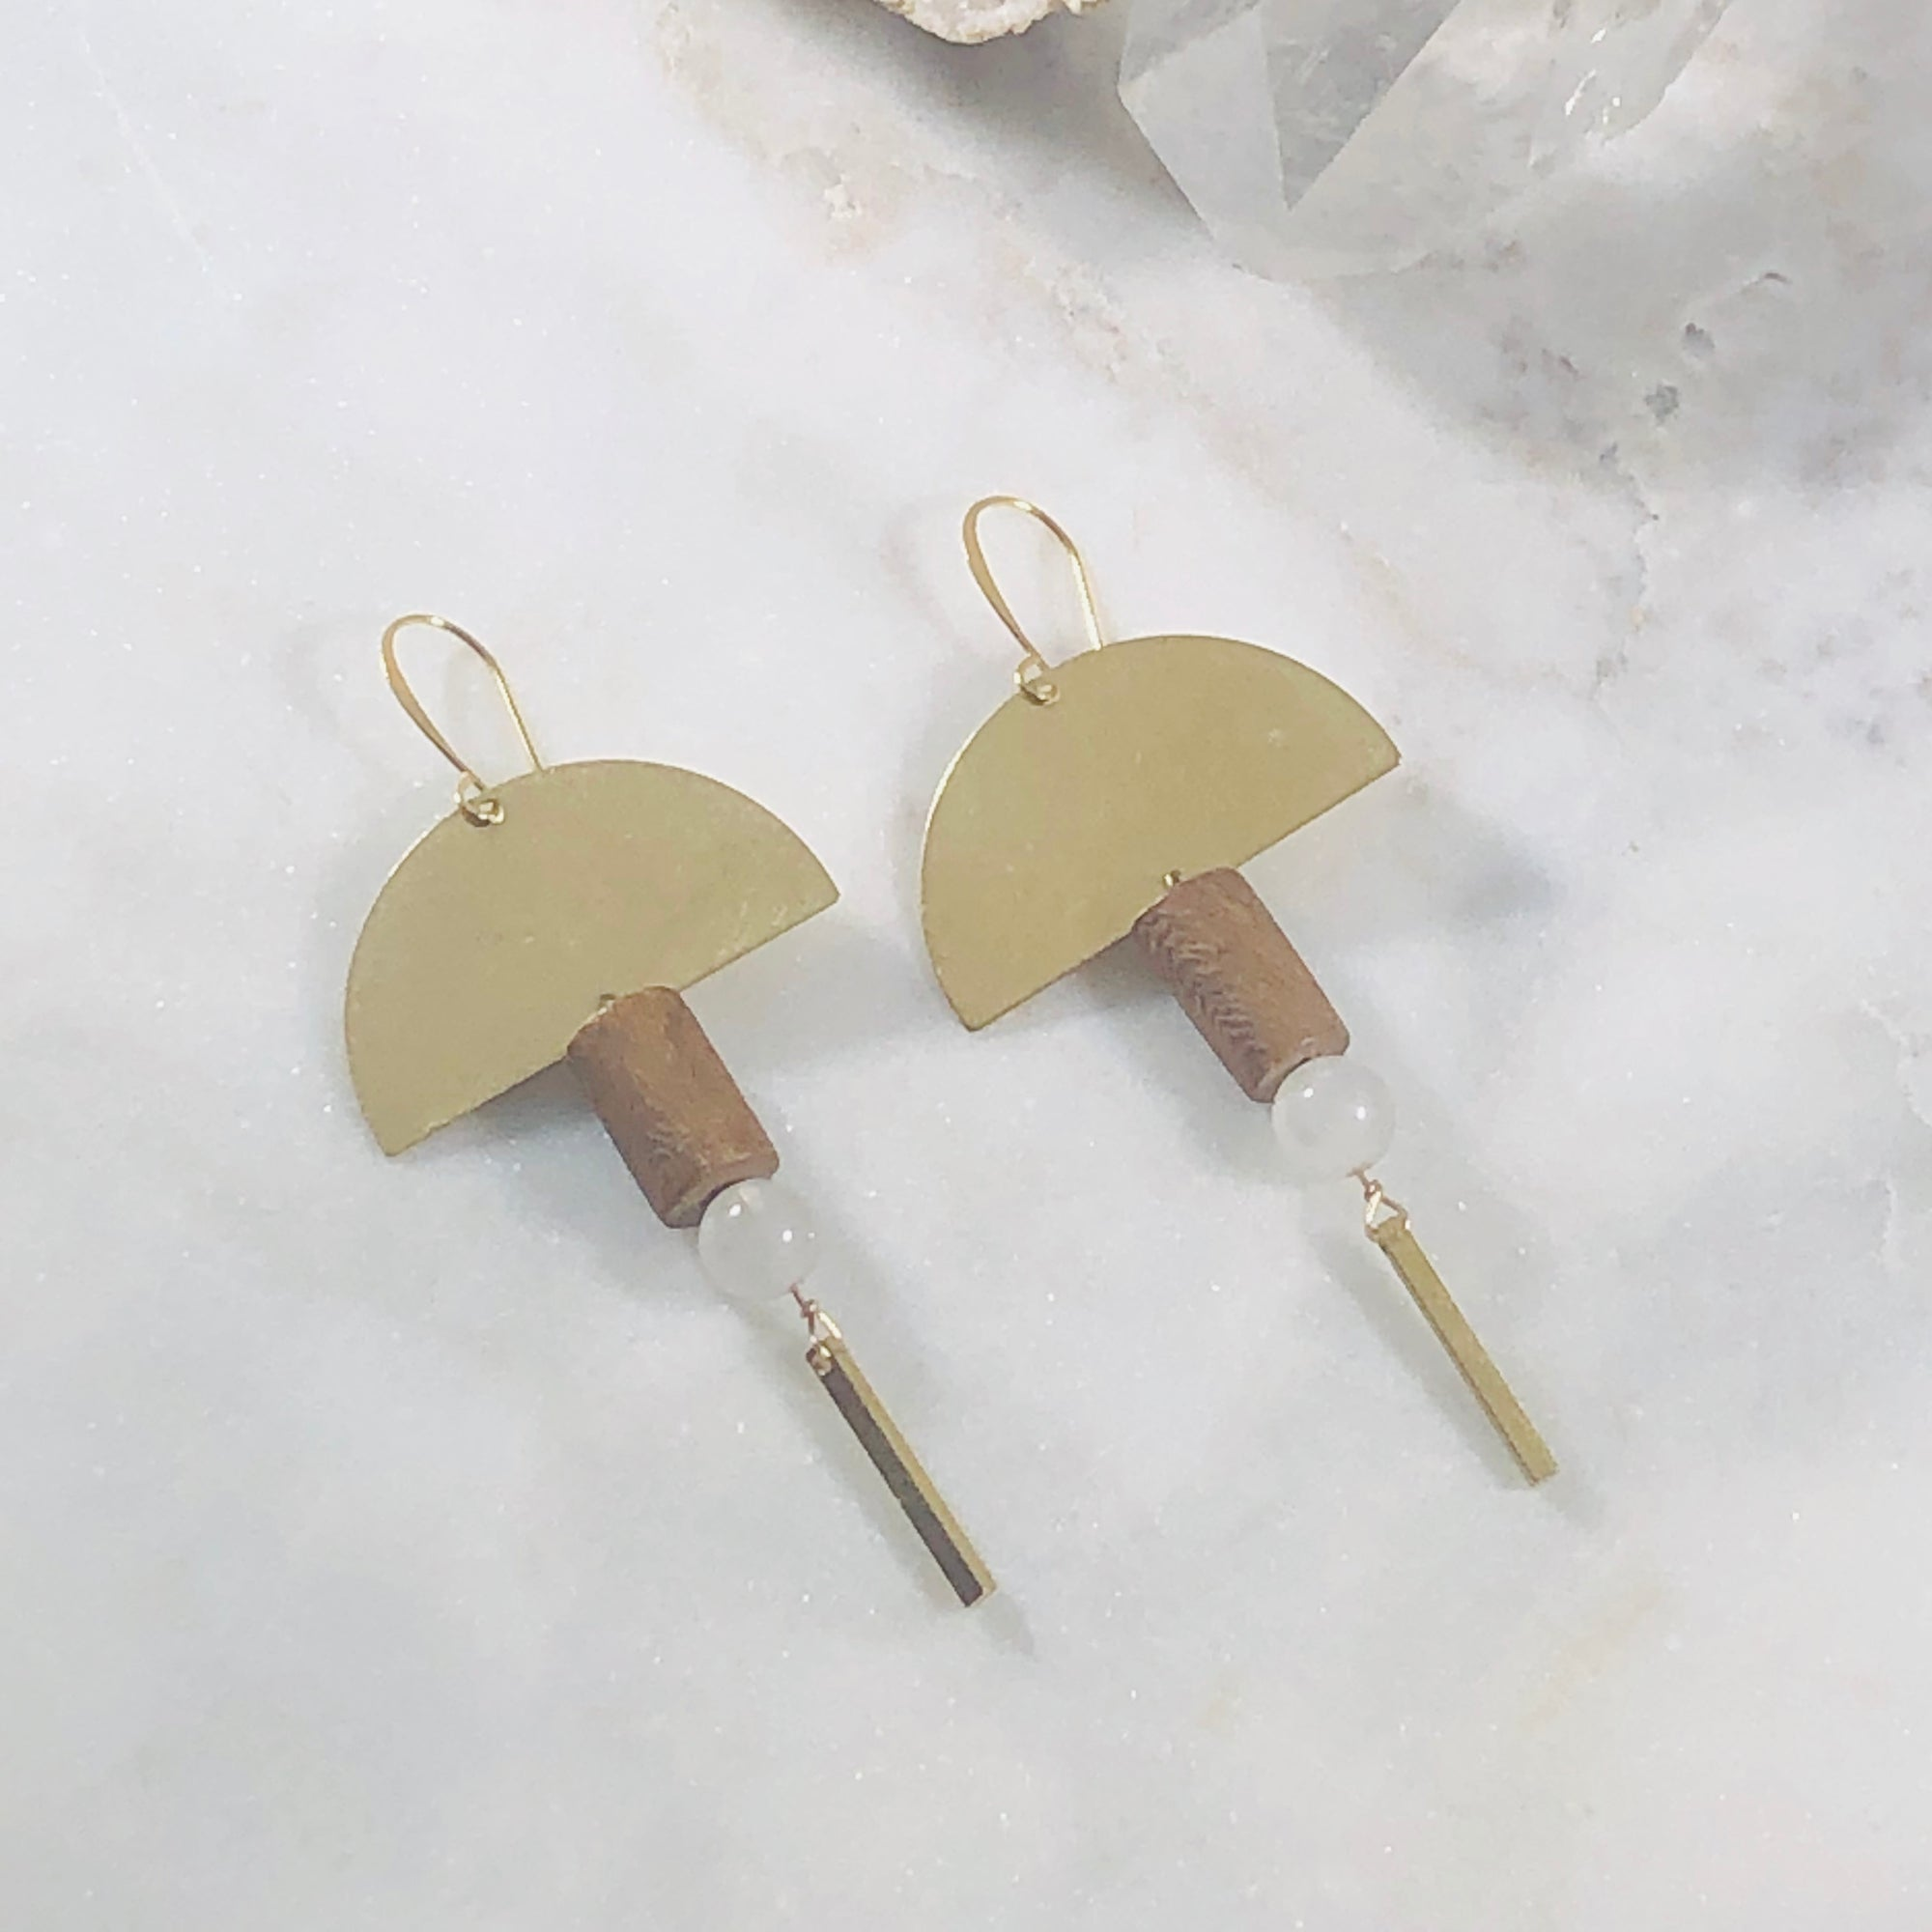 Handmade mid-century modern statement earrings featuring quartz crystal and wood